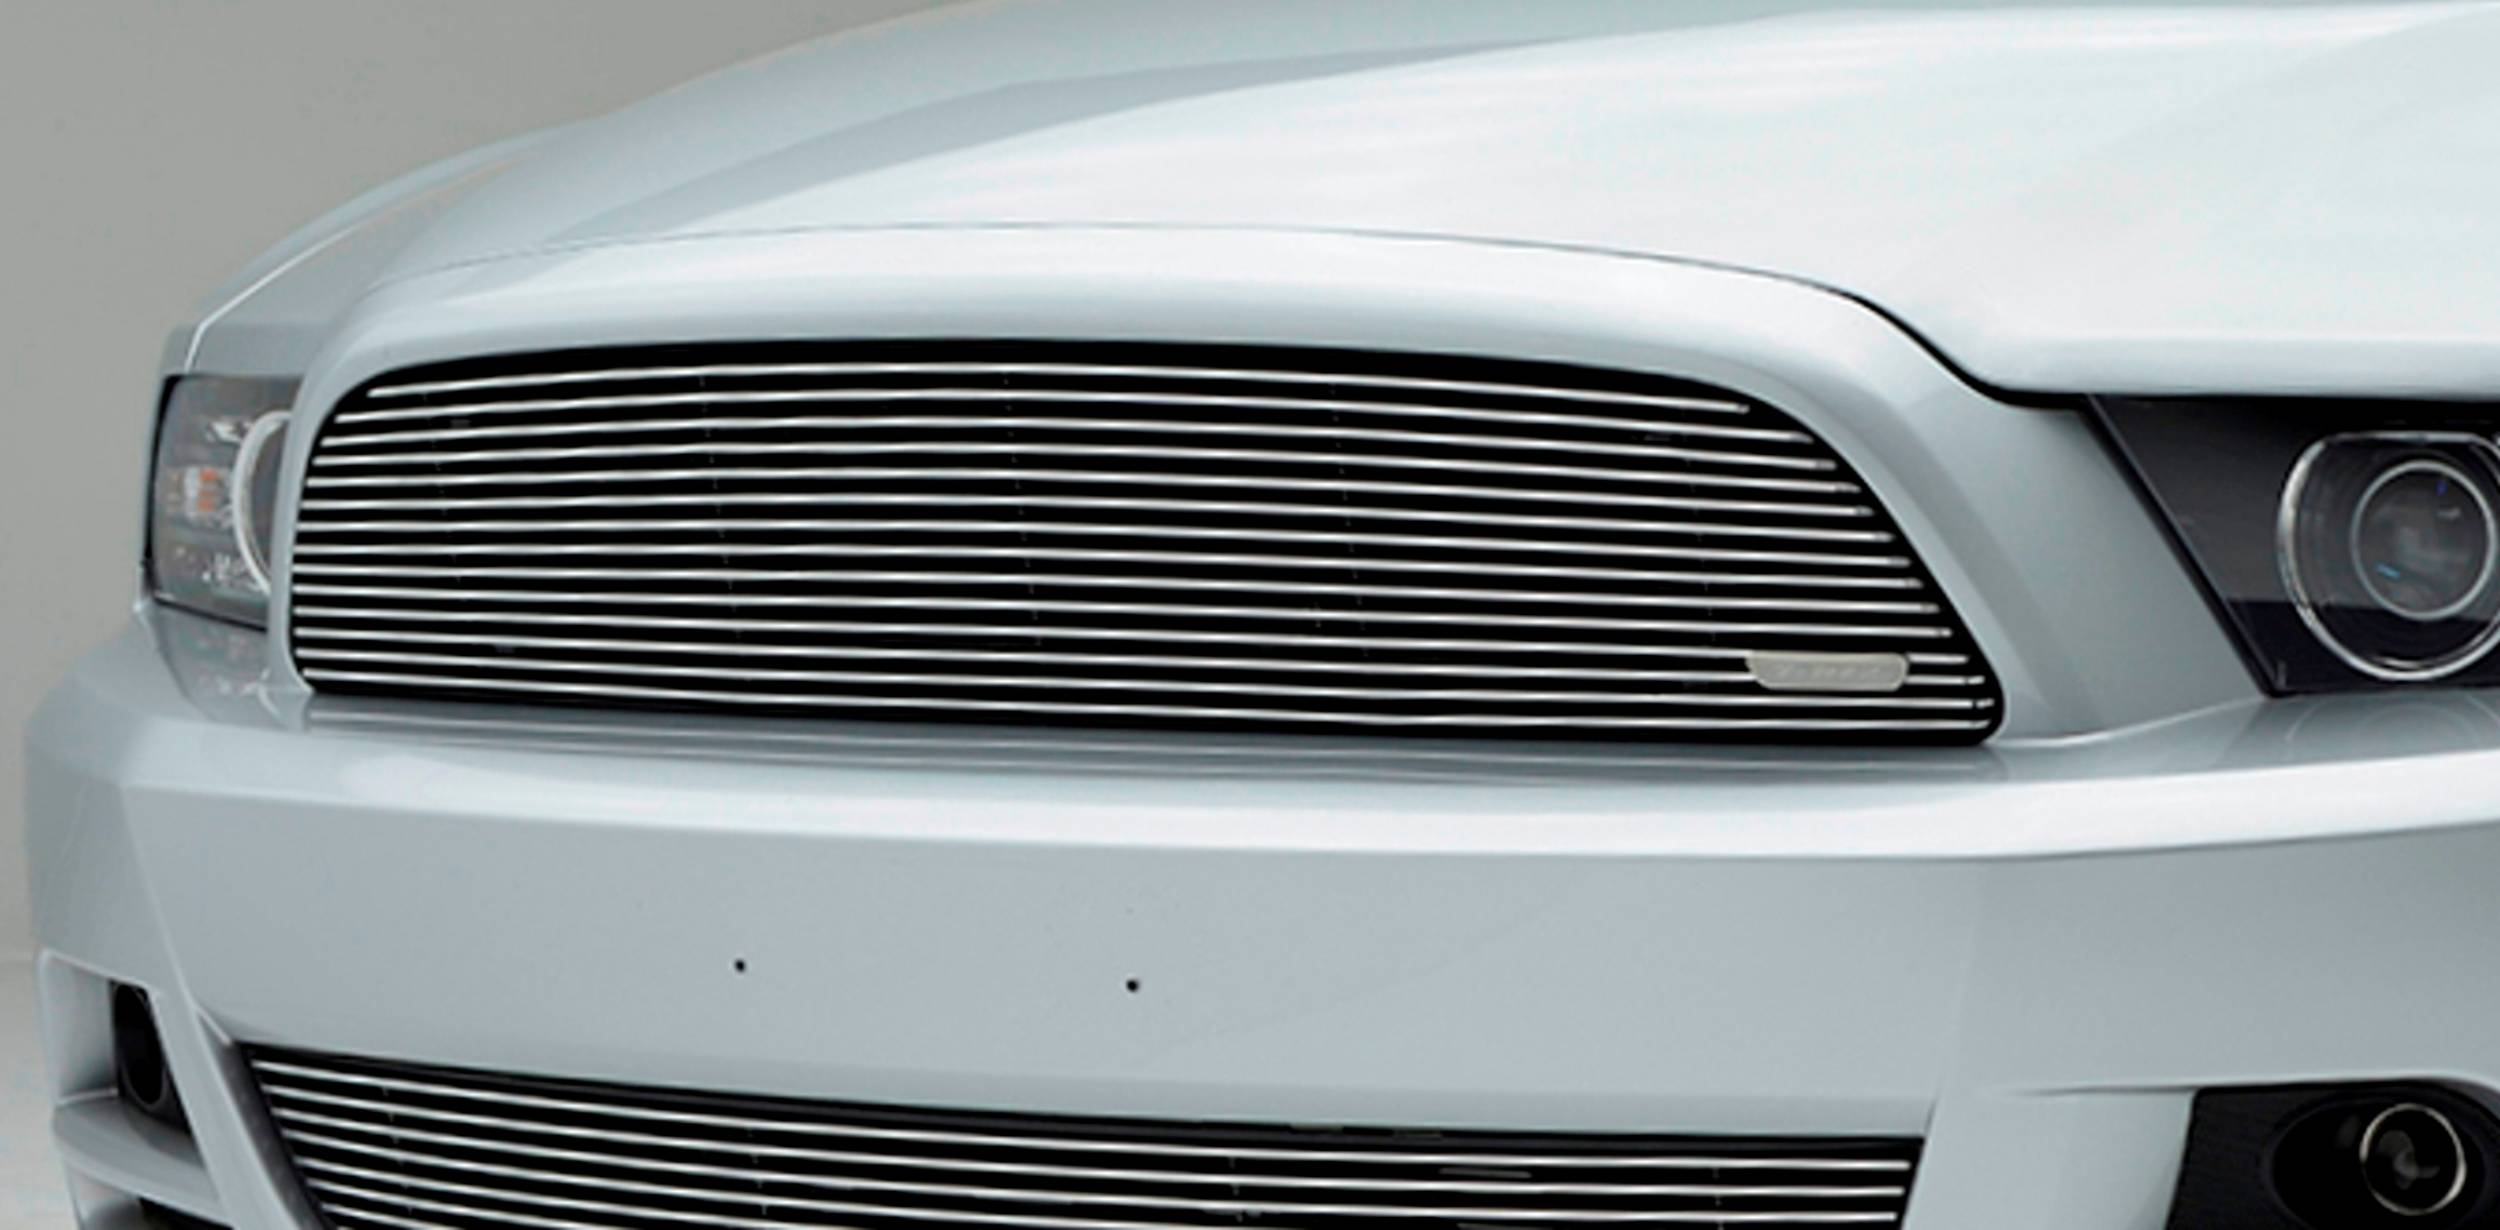 T-REX Grilles - Ford Mustang V6 Coupe,  Billet Grille, Main, Overlay, 1 Pc, Polished Aluminum Bars, No Logo cutout